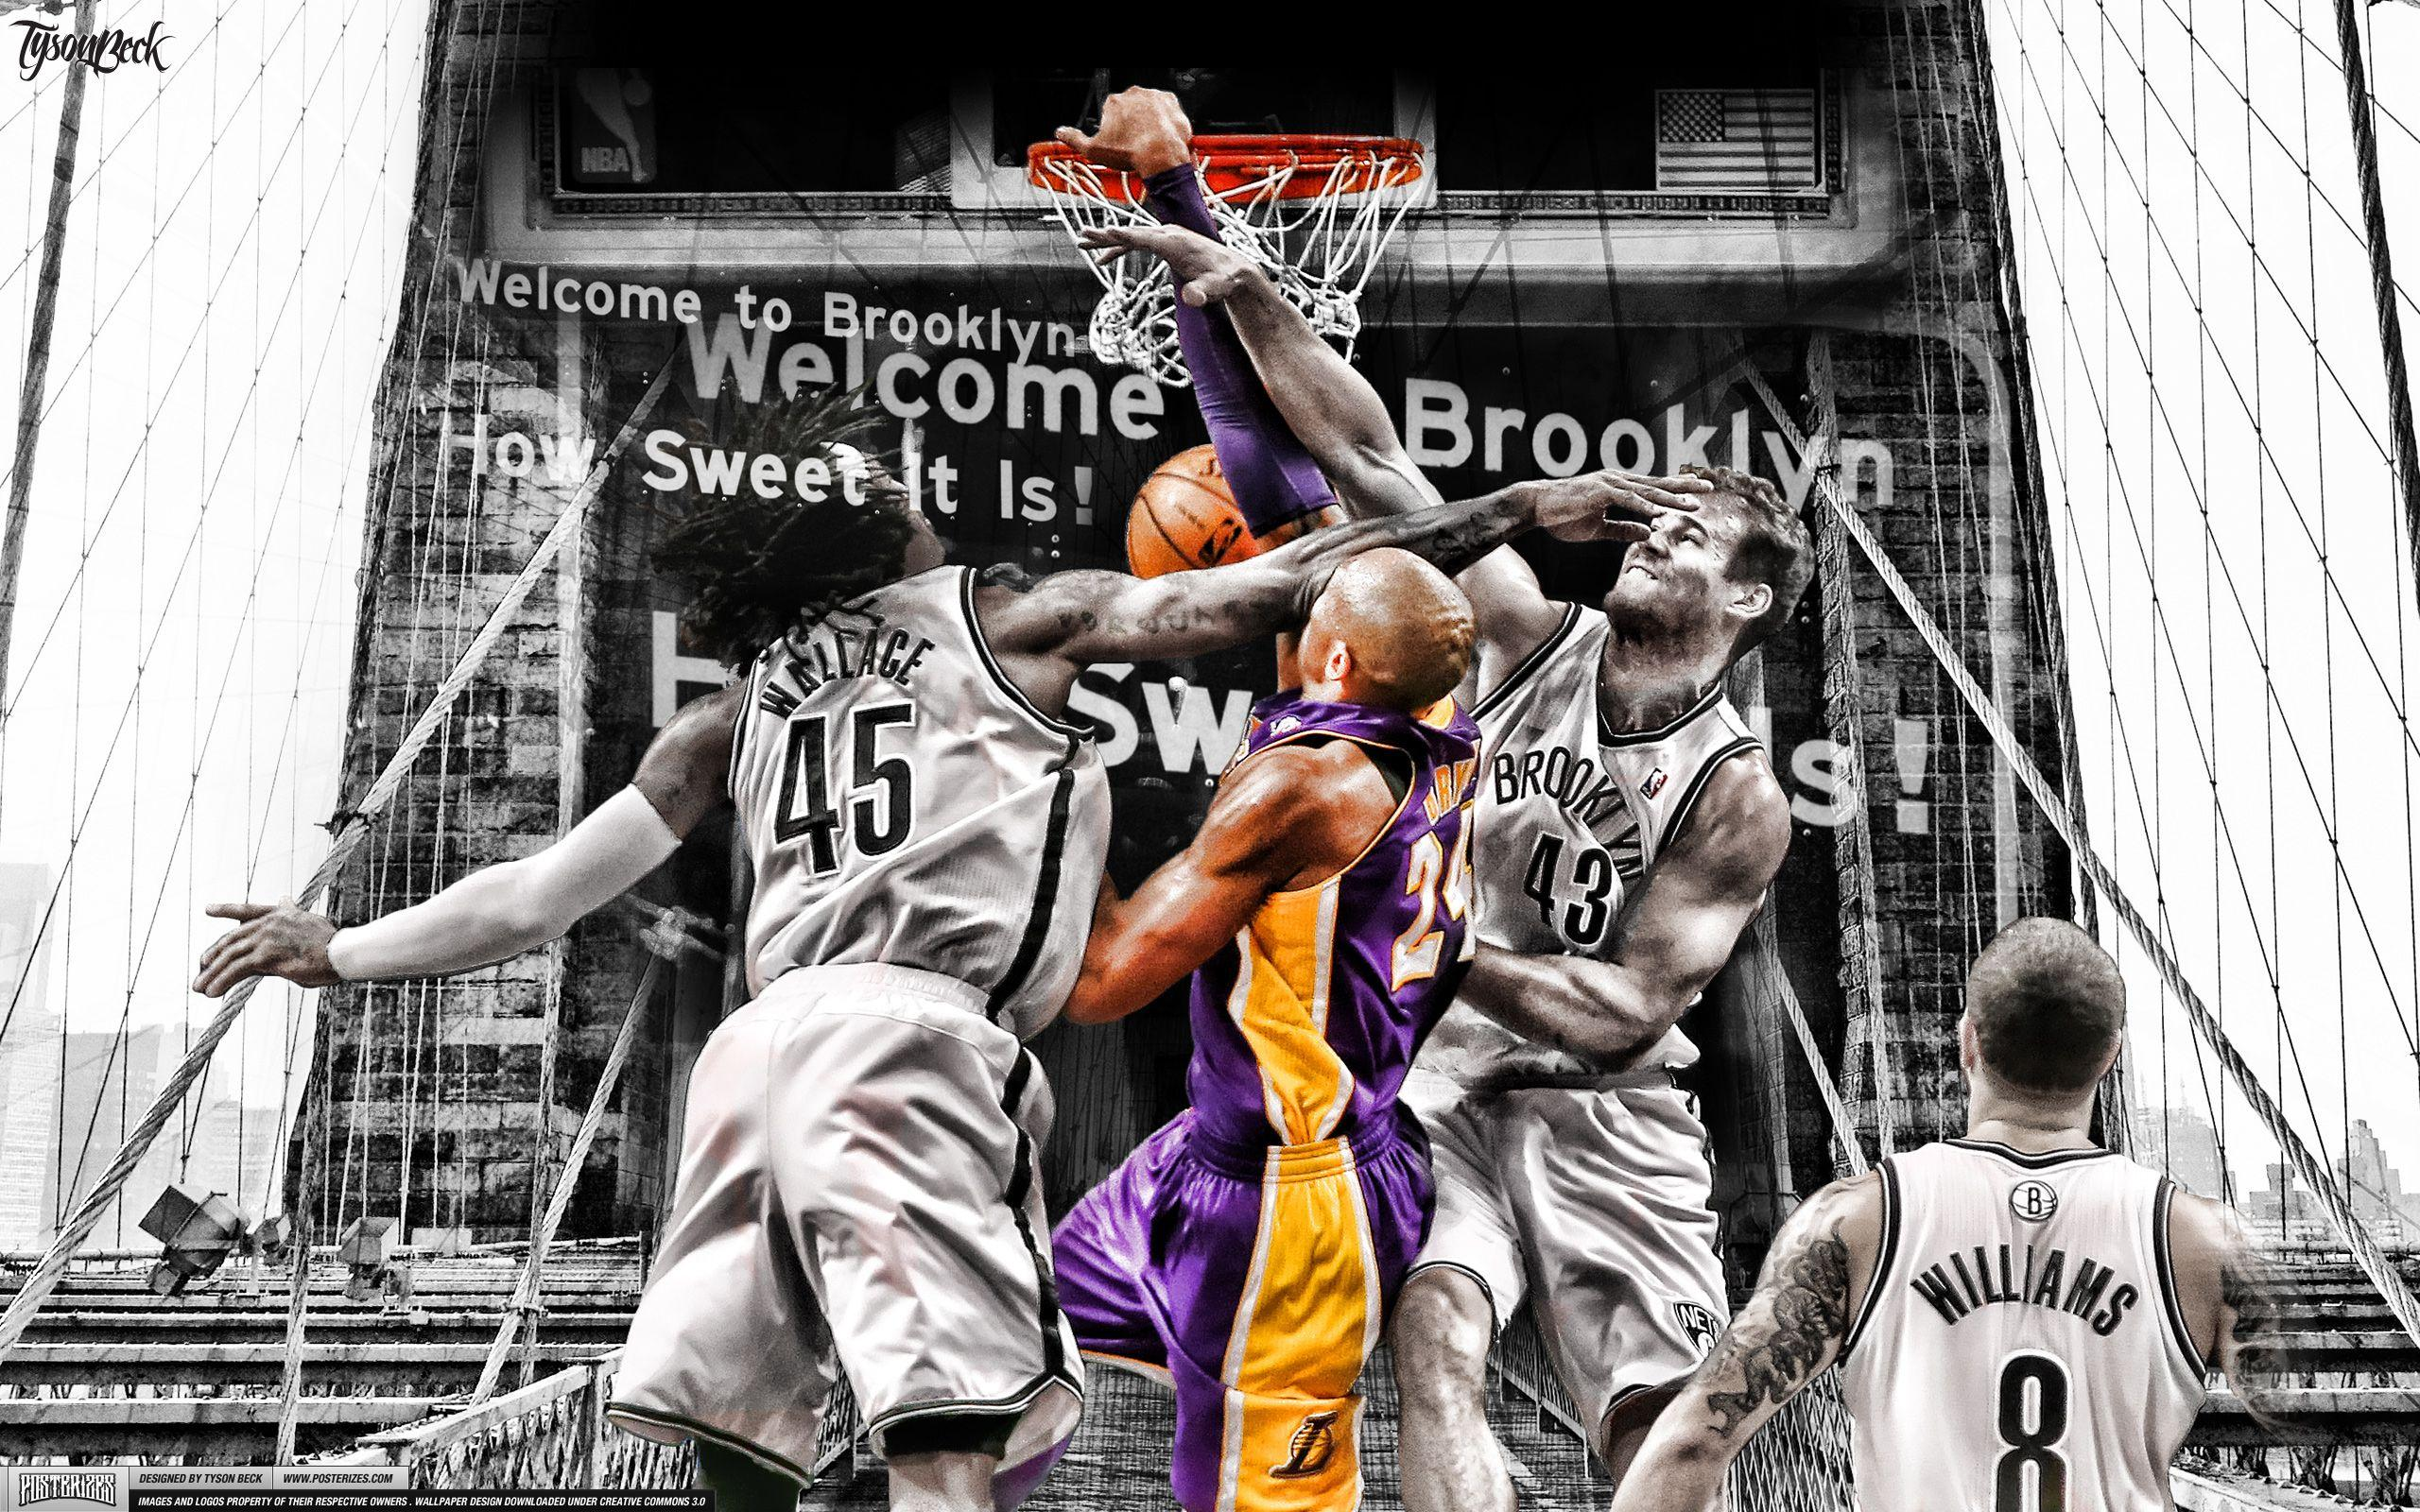 Nba Posterized Wallpapers - Wallpaper Cave